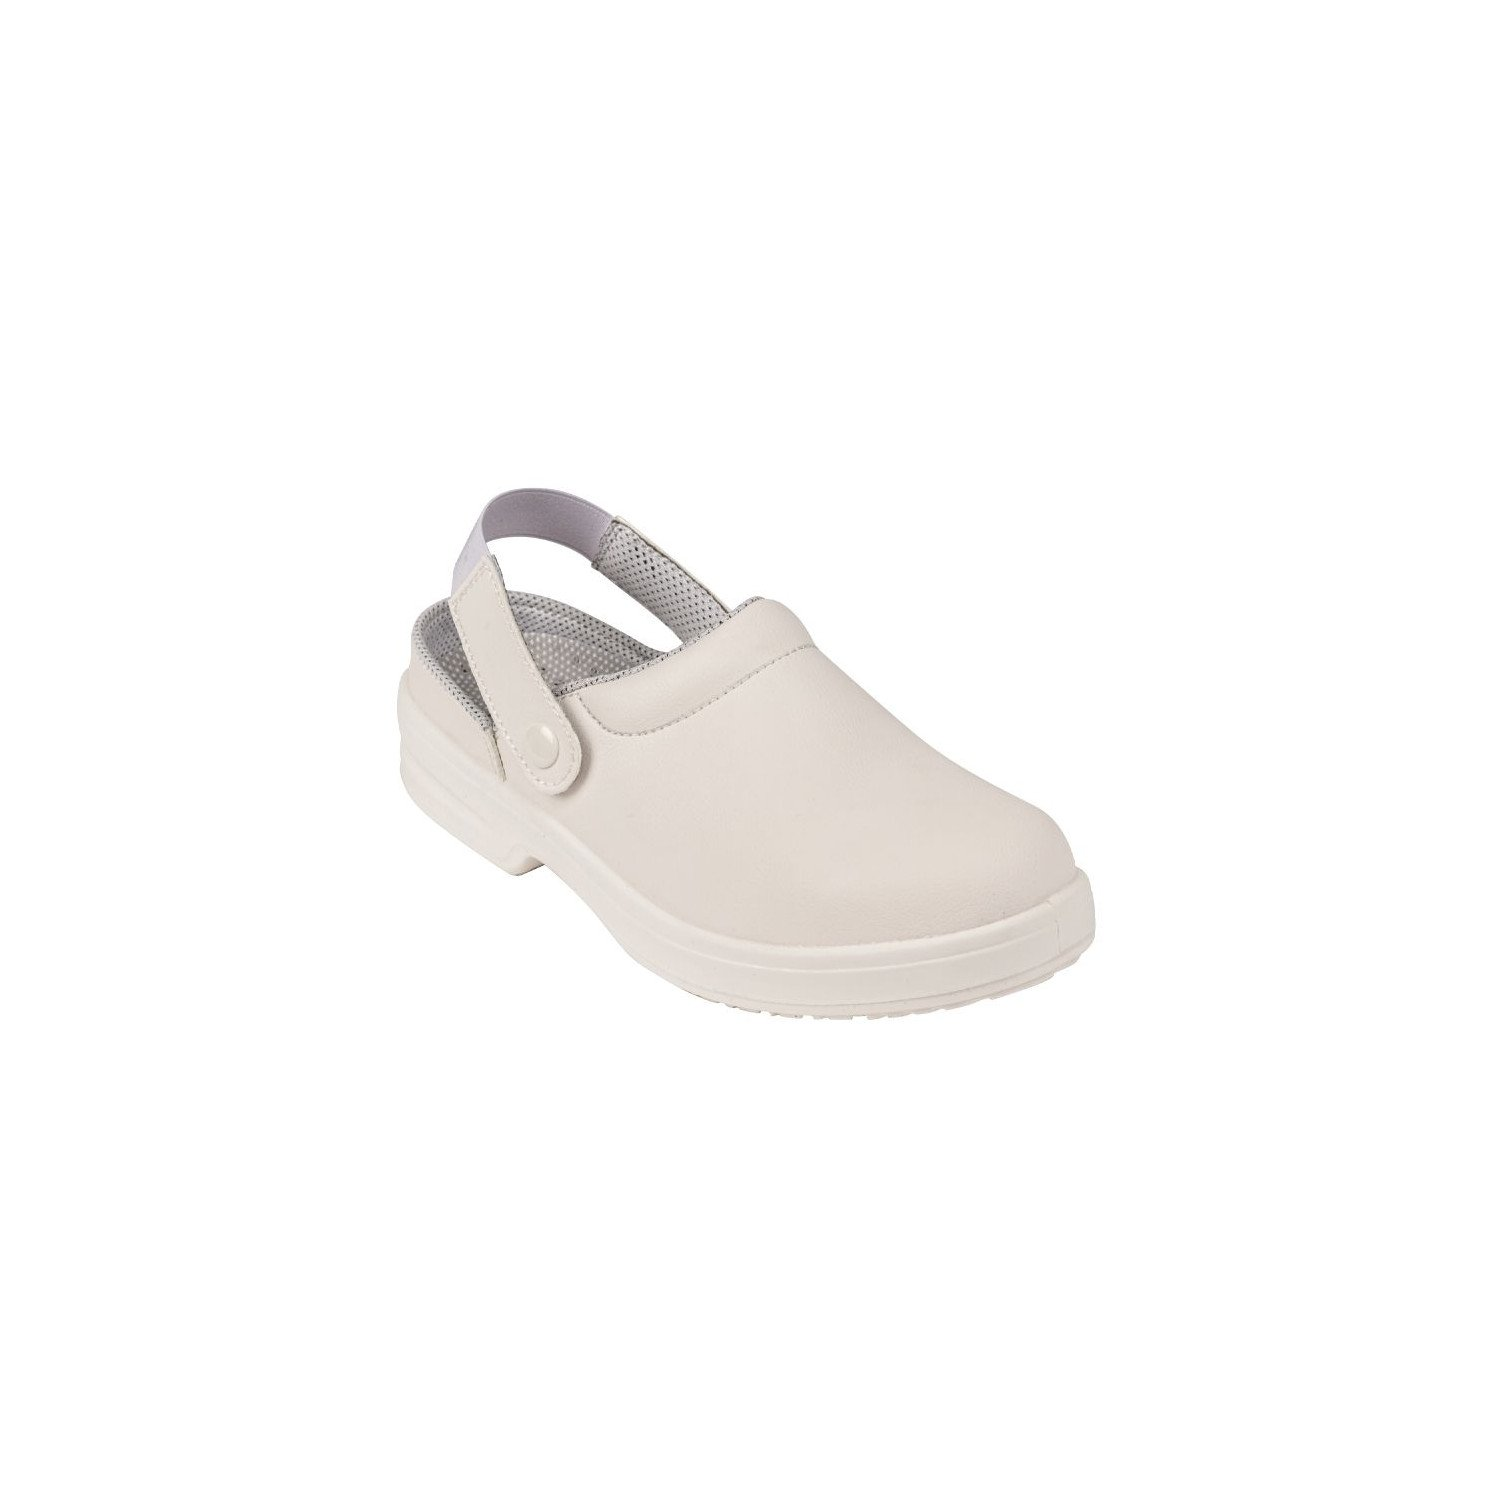 Sabots de sécurité unisexes Lites Blancs - Pointure 44 LITES SAFETY FOOTWEAR Nisbets Vêtements